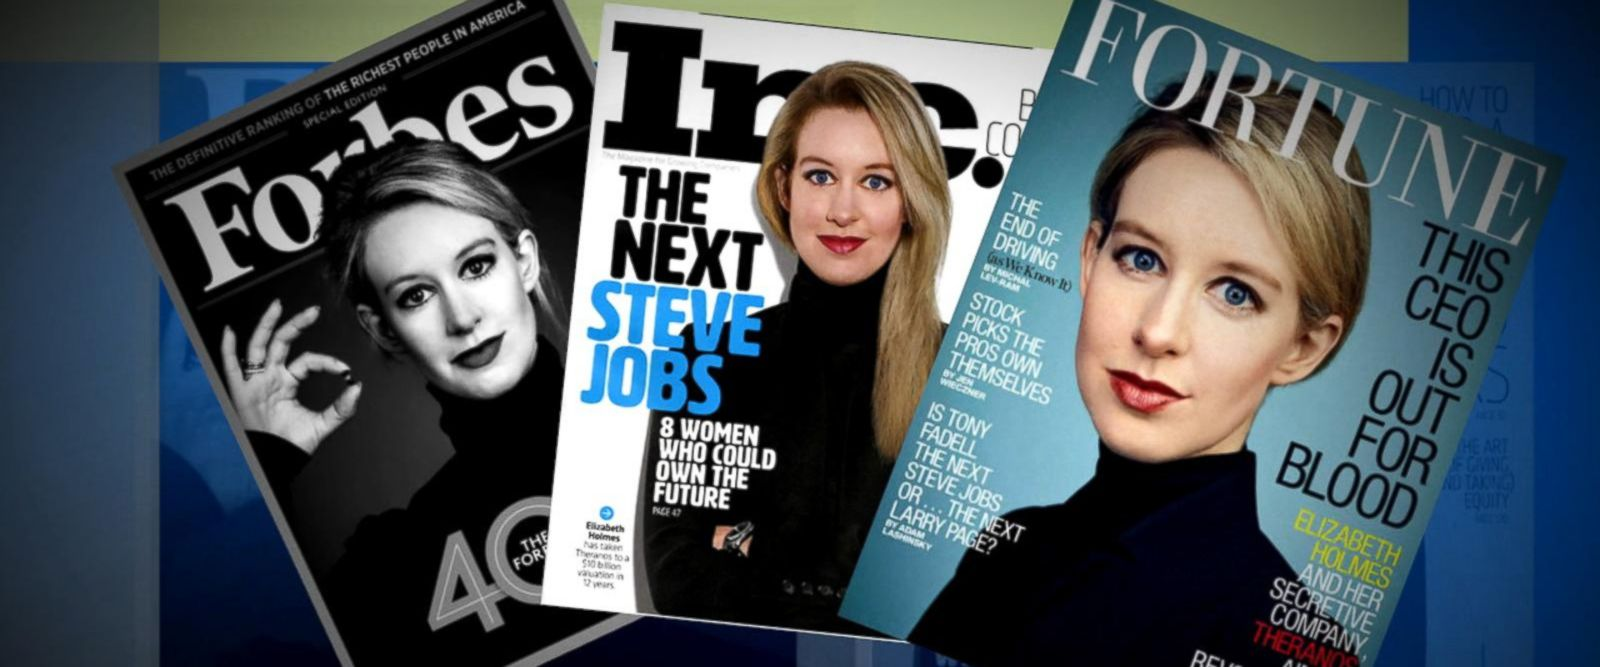 VIDEO: Theranos CEO faces criminal charges